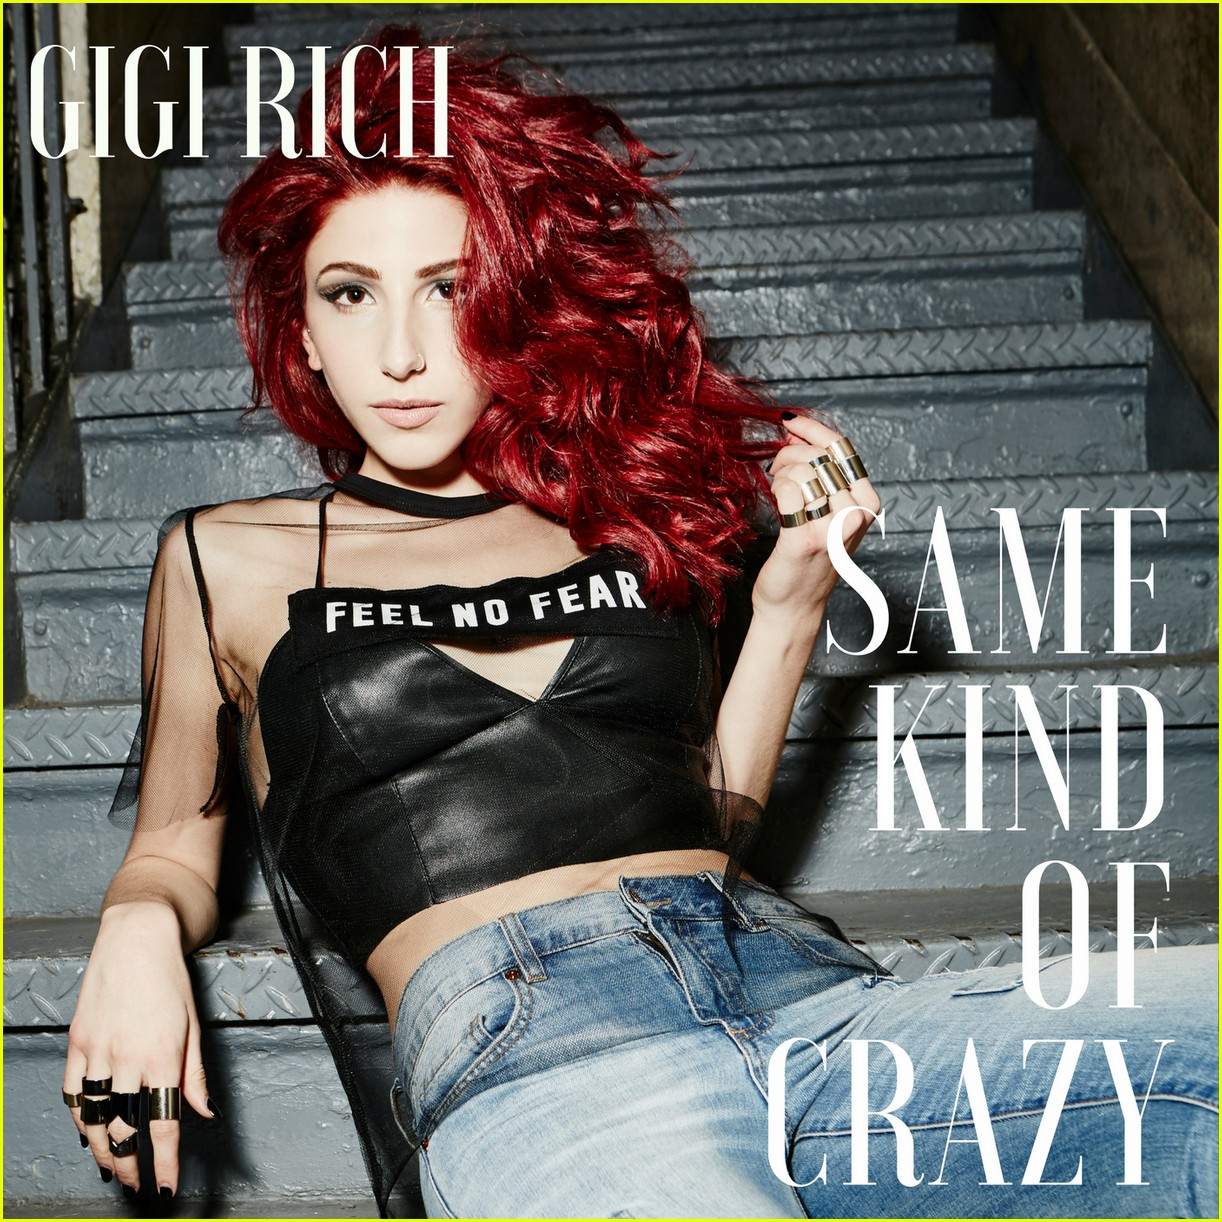 gigi rich same kind crazy facts 02